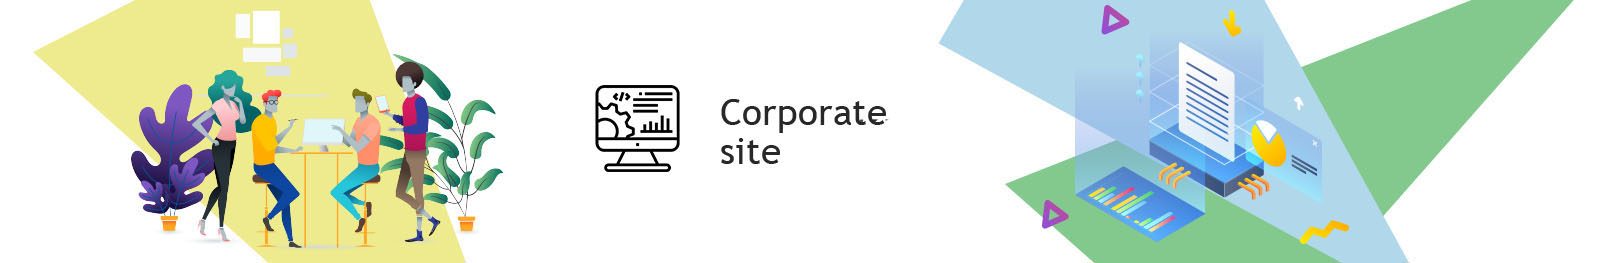 Corporate website. Order a corporate site on a turn-key basis.